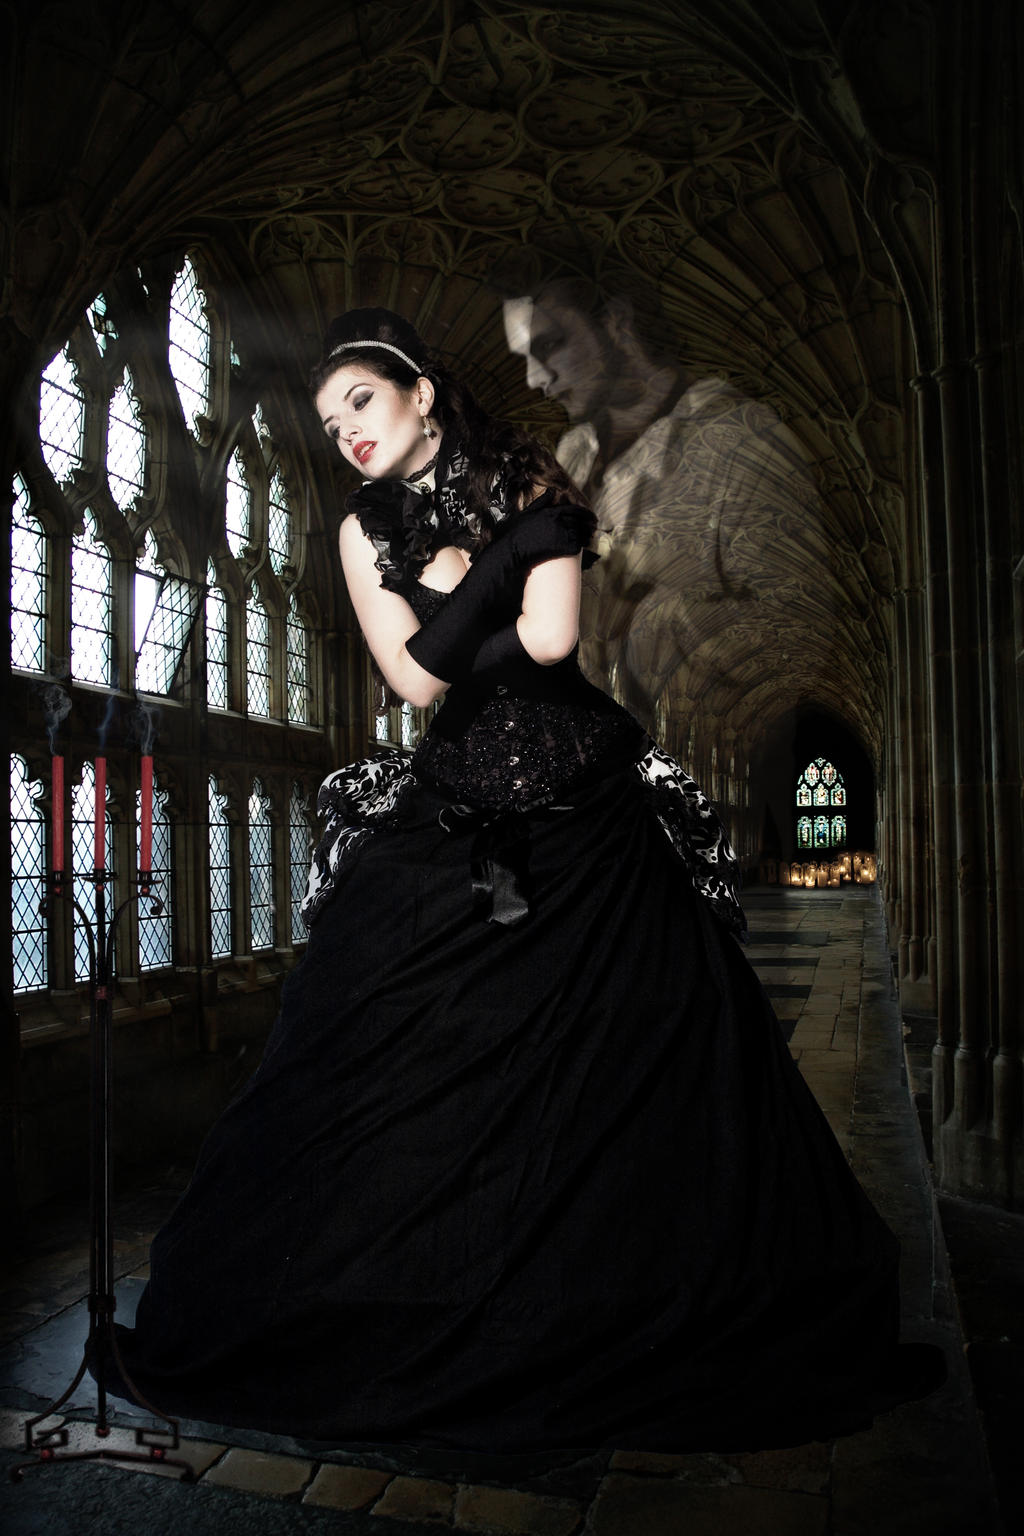 Gothic Romance by ErinM31 on DeviantArt